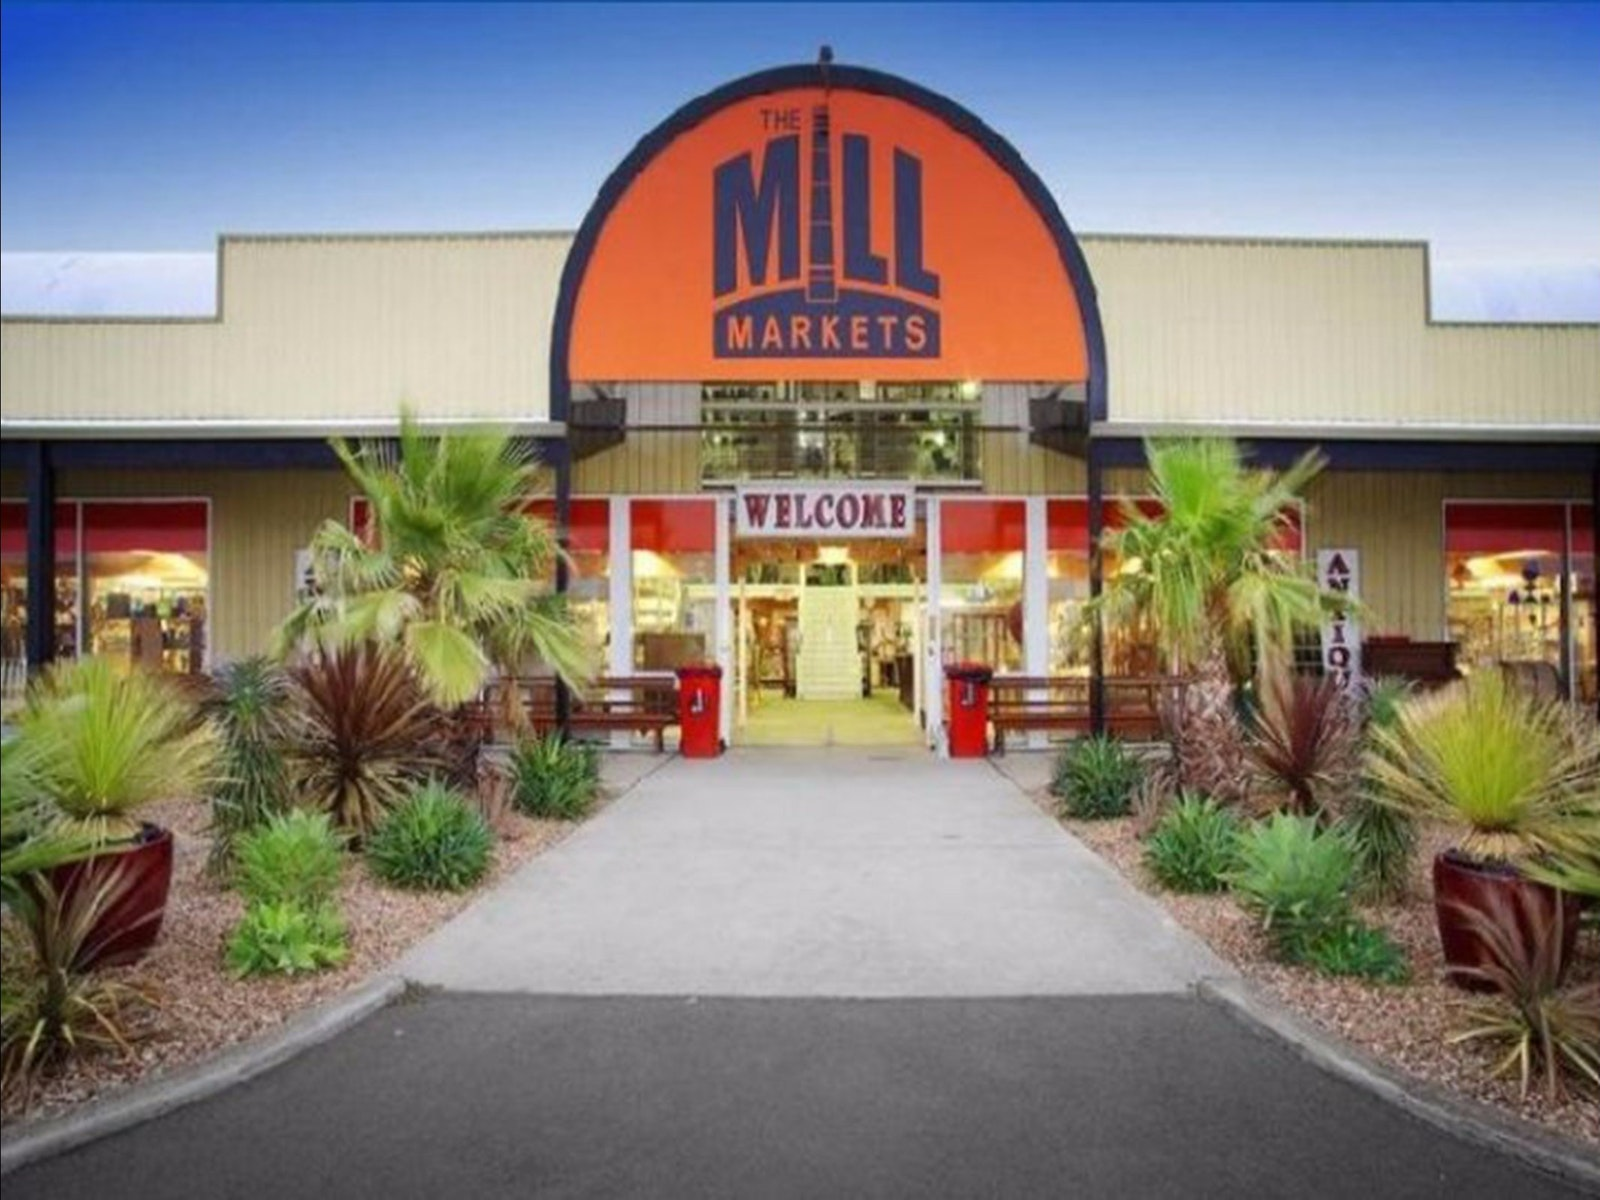 The Mill Markets - Geelong